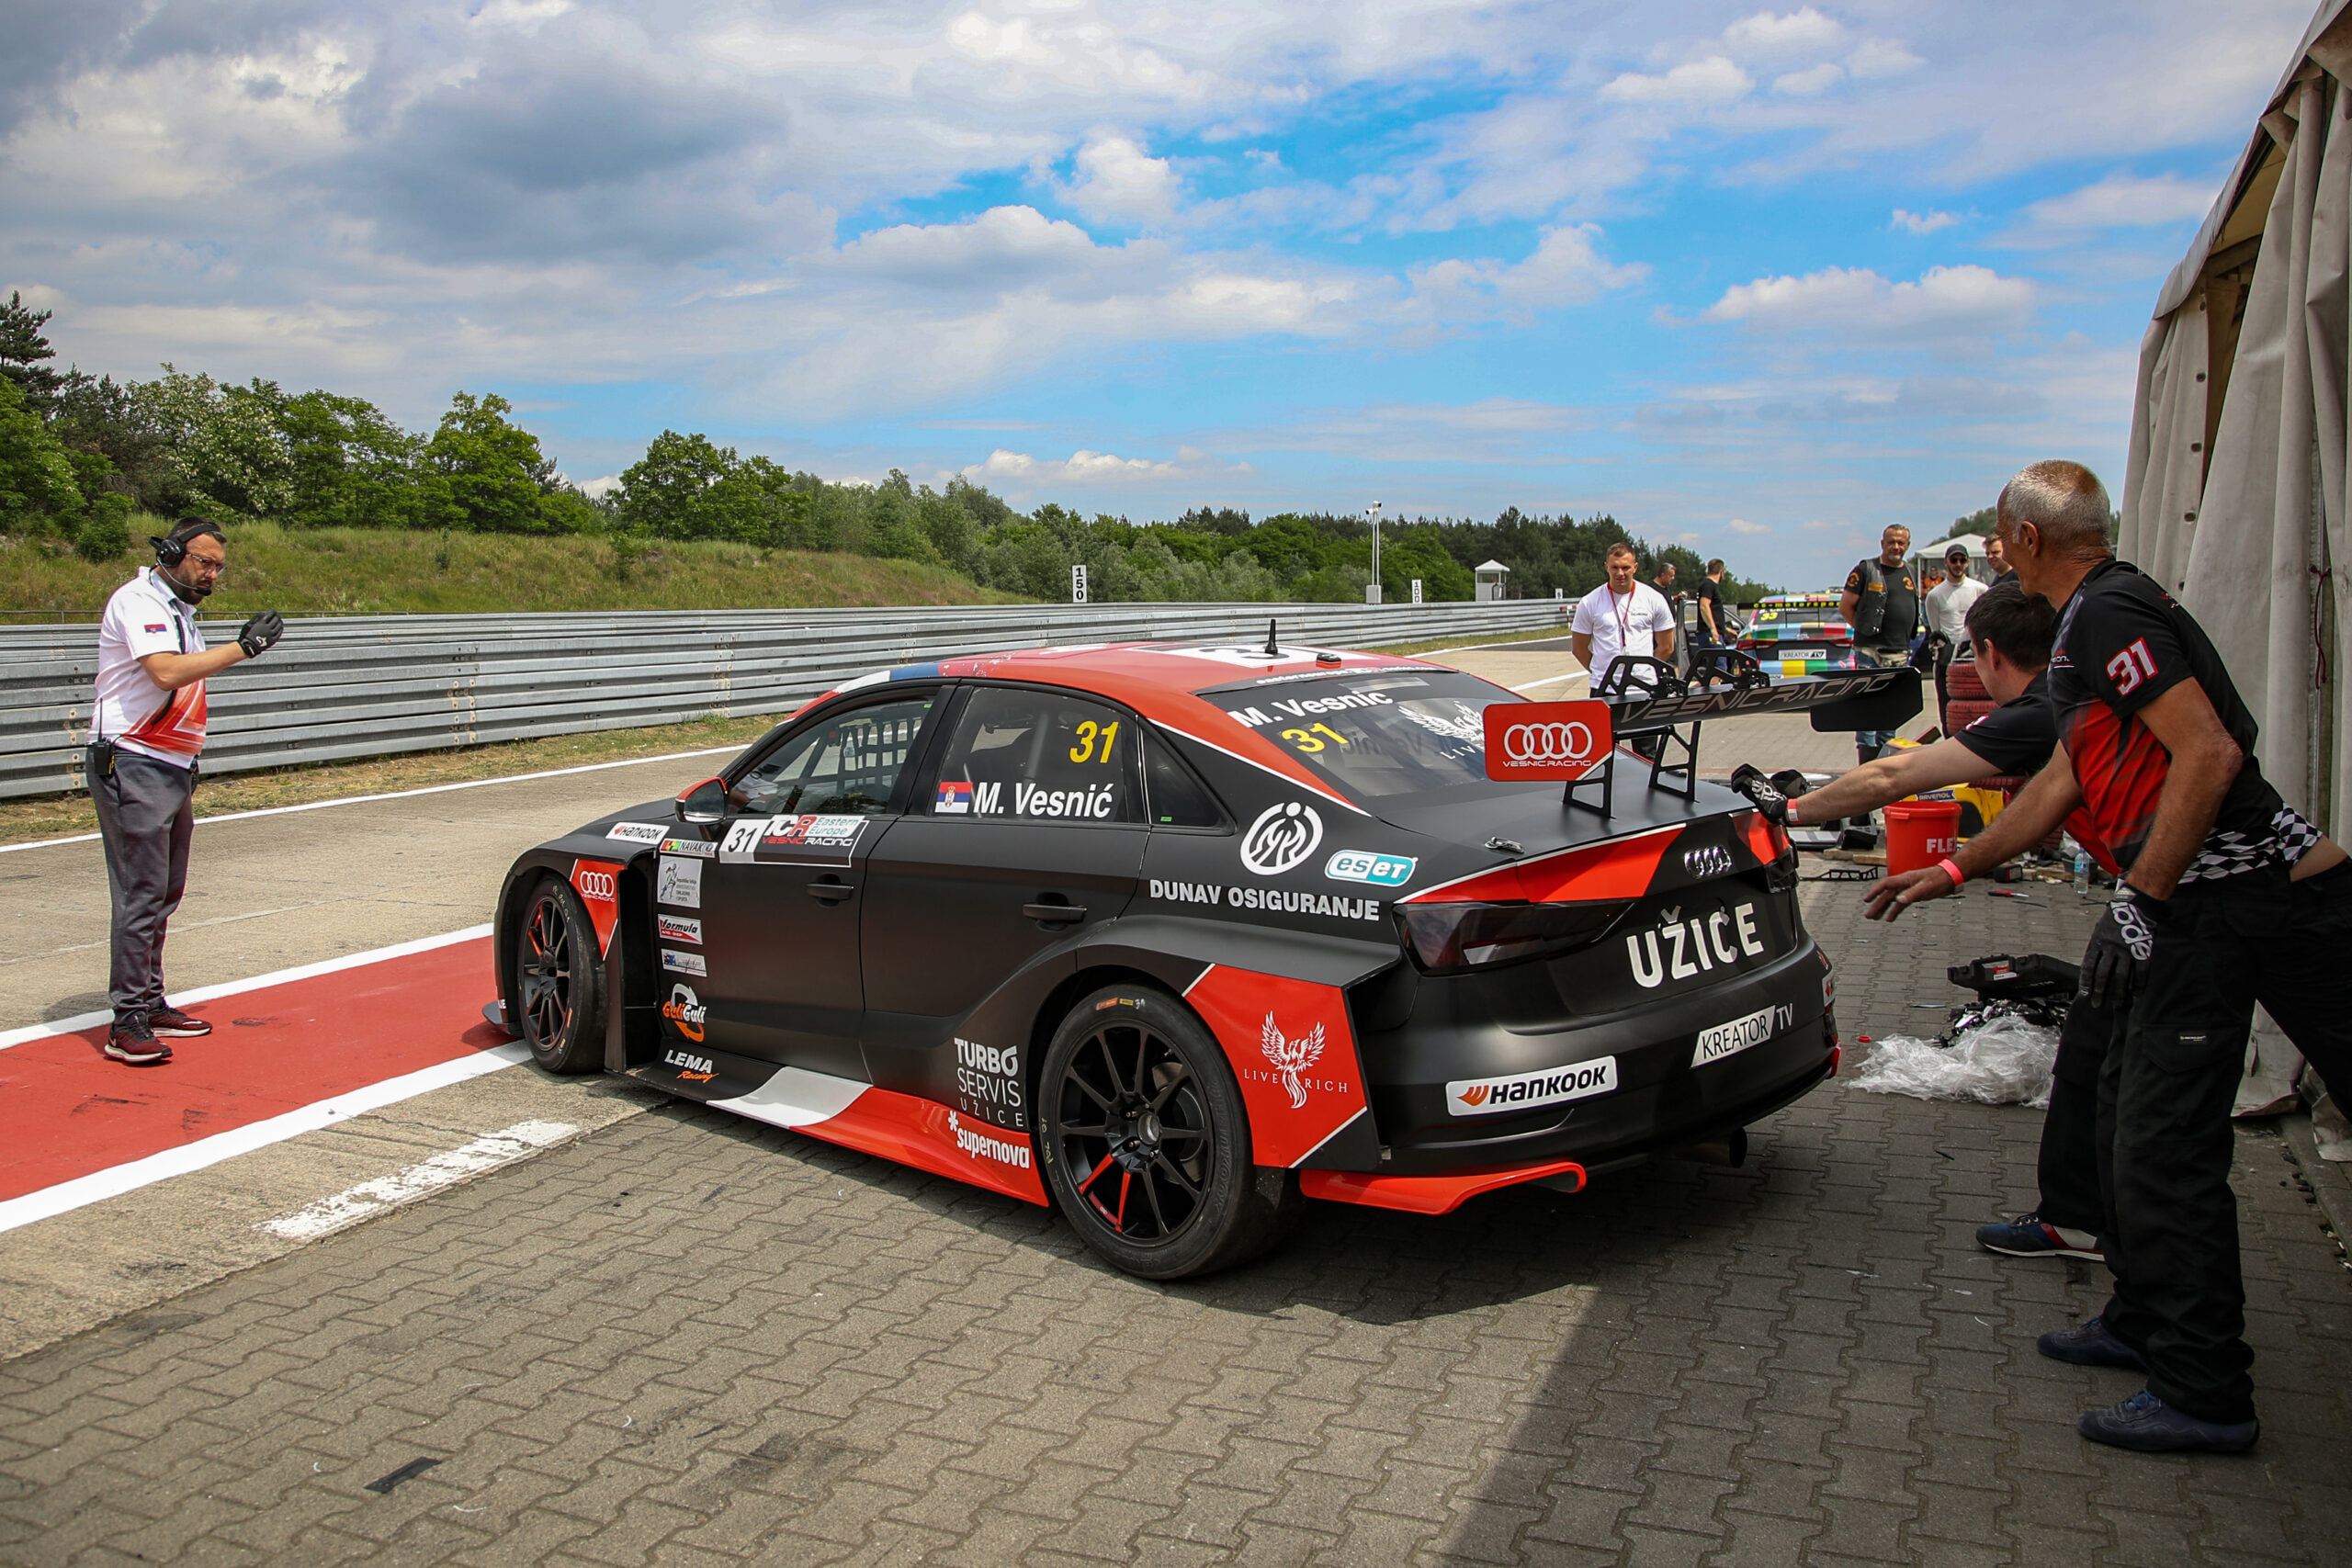 My car is finally working, says Vesnić after qualifying